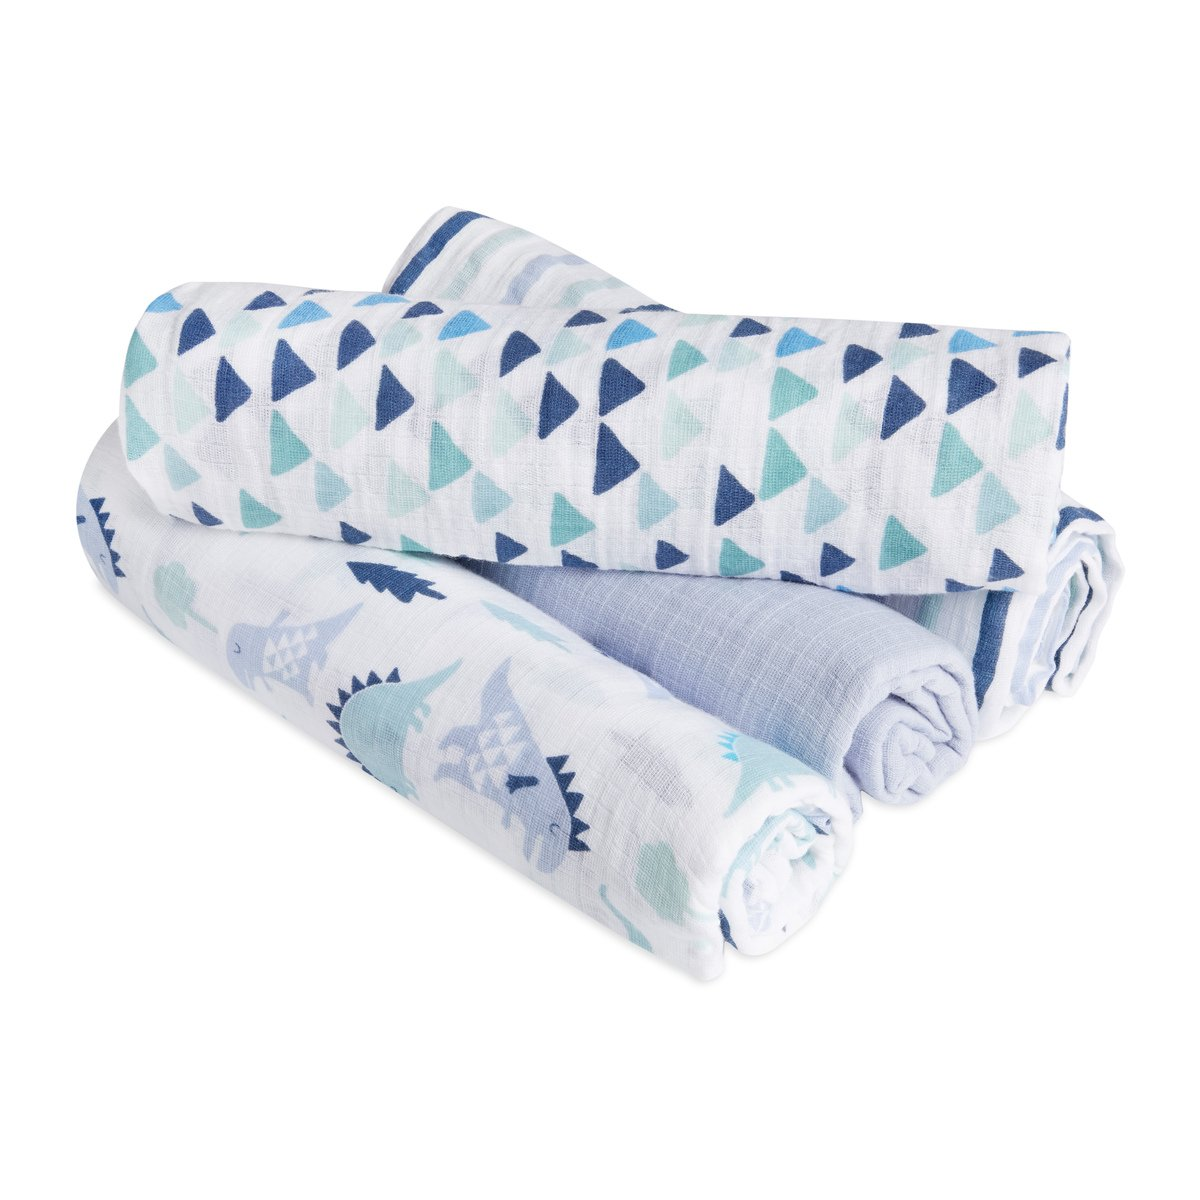 aden by aden + anais Swaddle Blanket | Muslin Blankets for Girls & Boys | Baby Receiving Swaddles | Ideal Newborn Gifts, Unisex Infant Shower Items, Toddler Gift, Wearable Swaddling Set, Dinos 4 by aden + anais